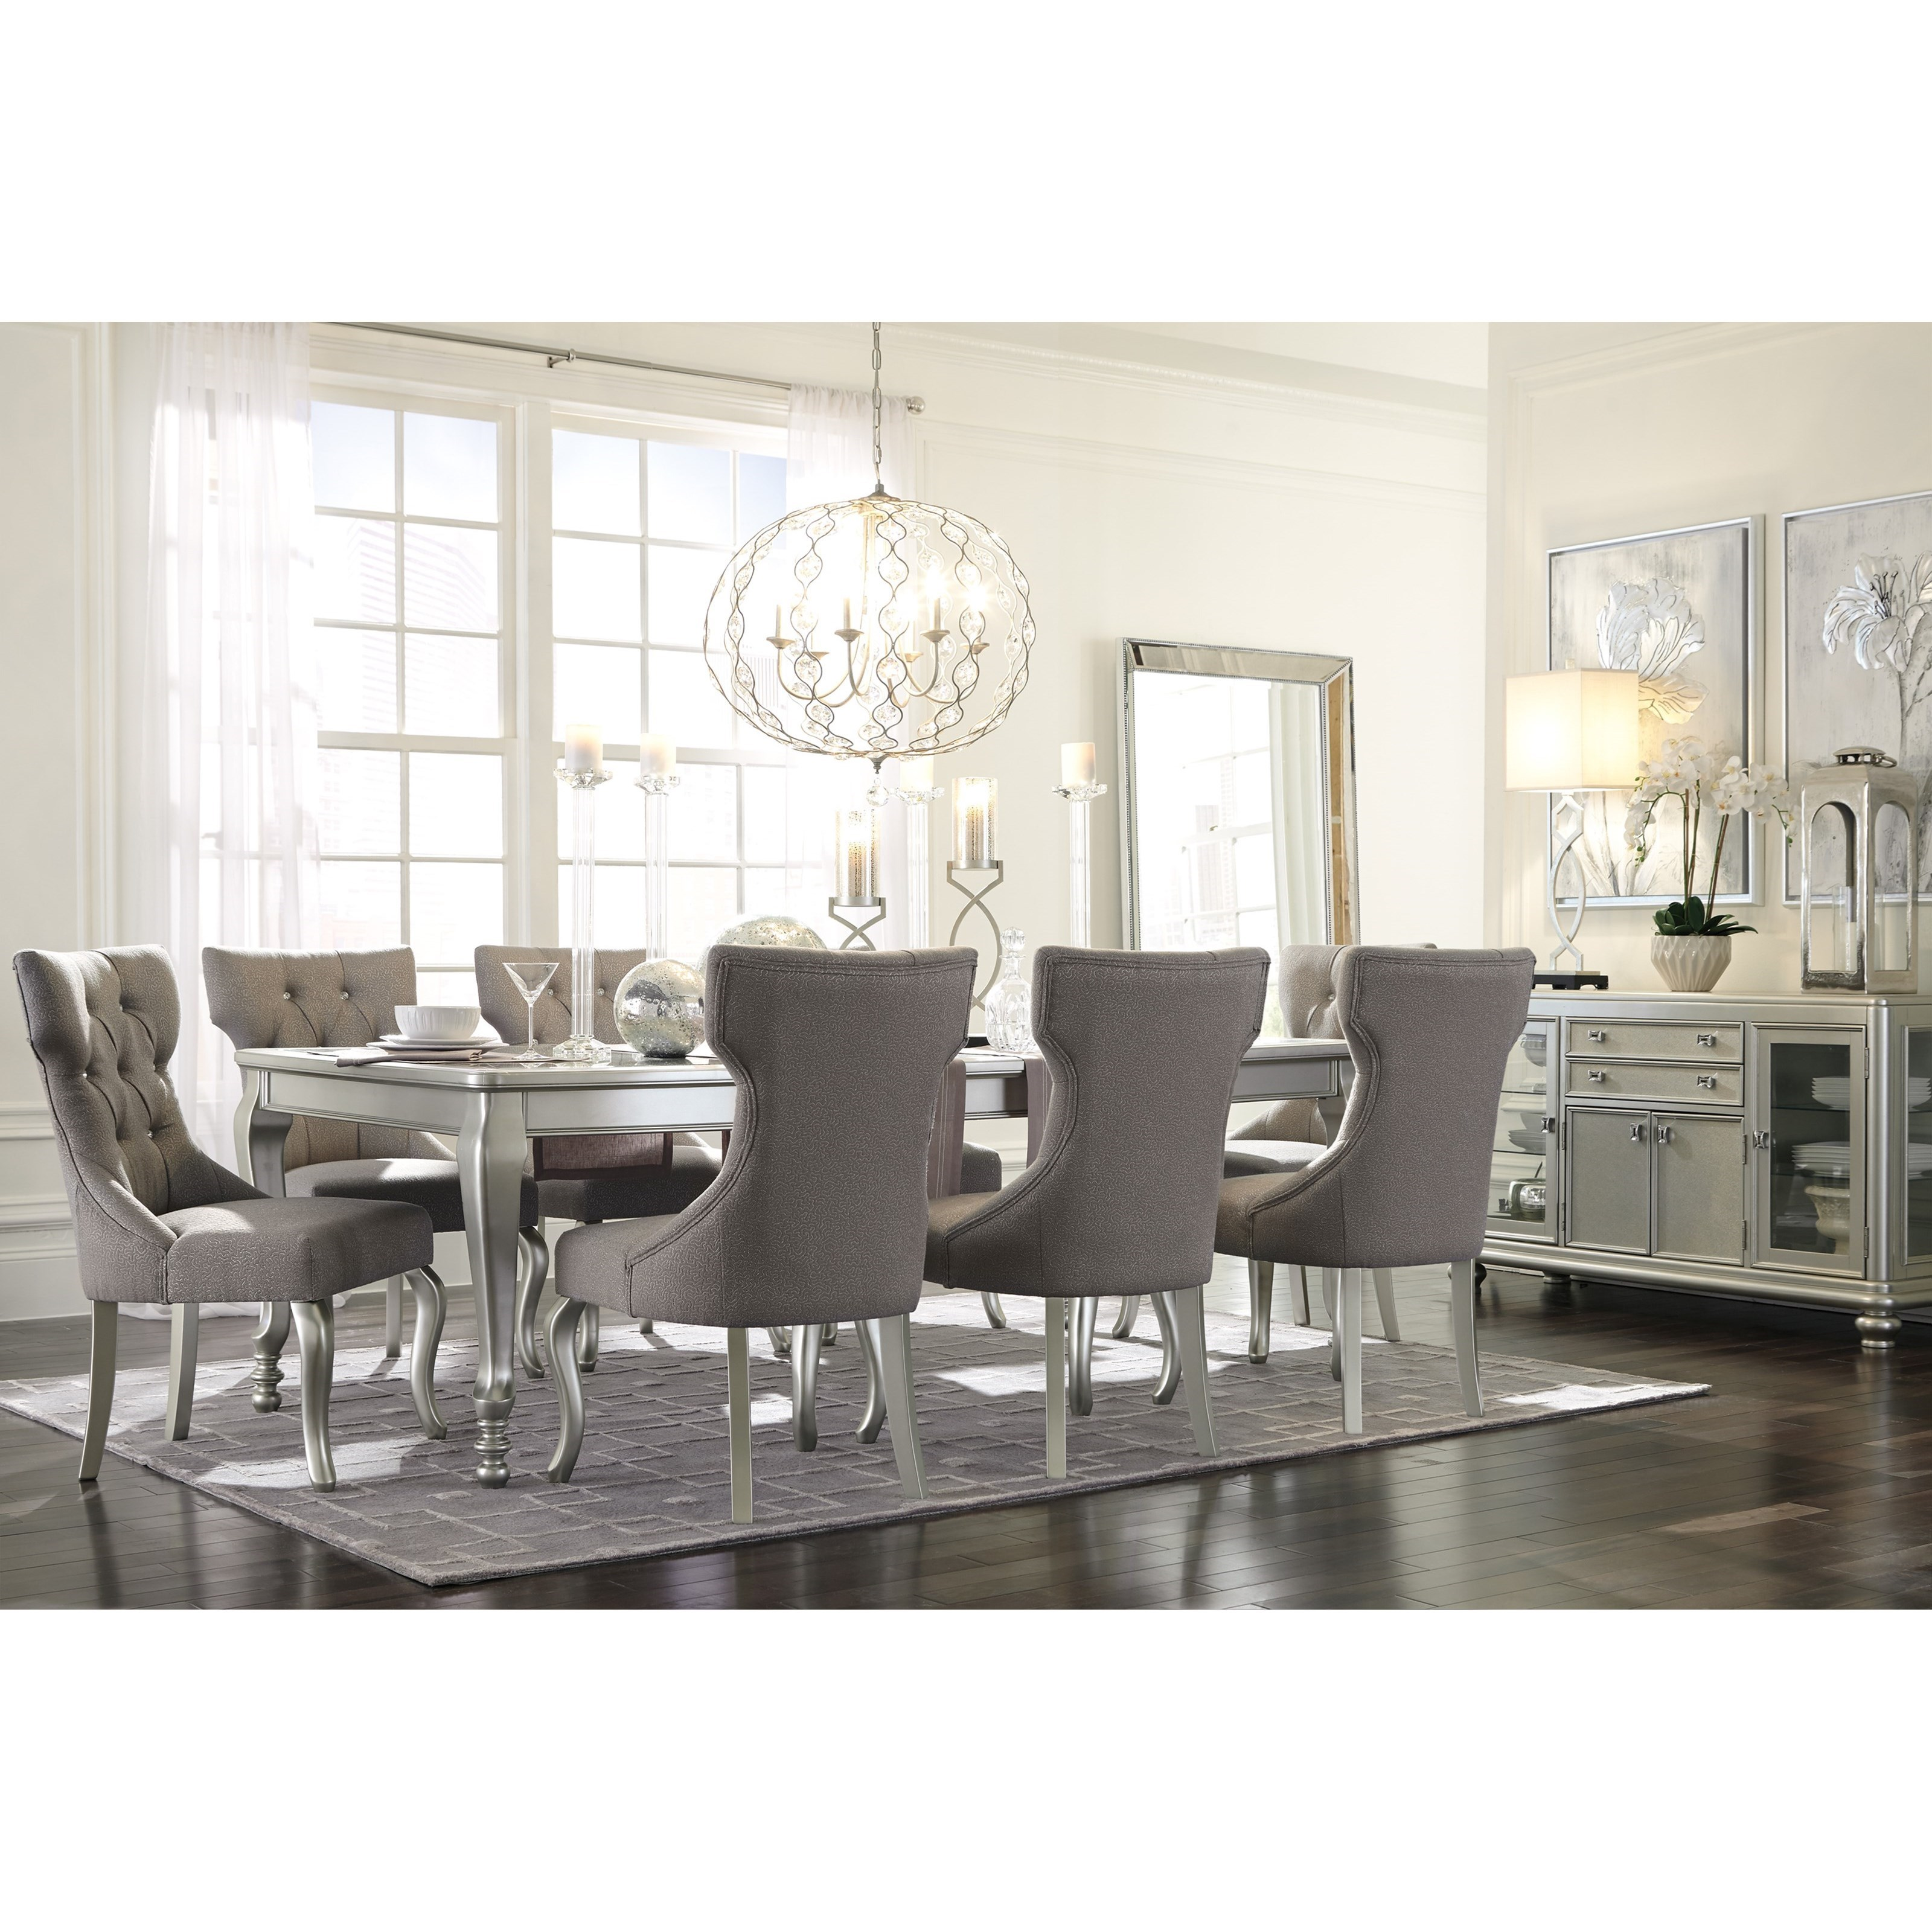 Signature Design By Ashley Besteneer Formal Dining Room: Signature Design By Ashley Coralayne Formal Dining Room